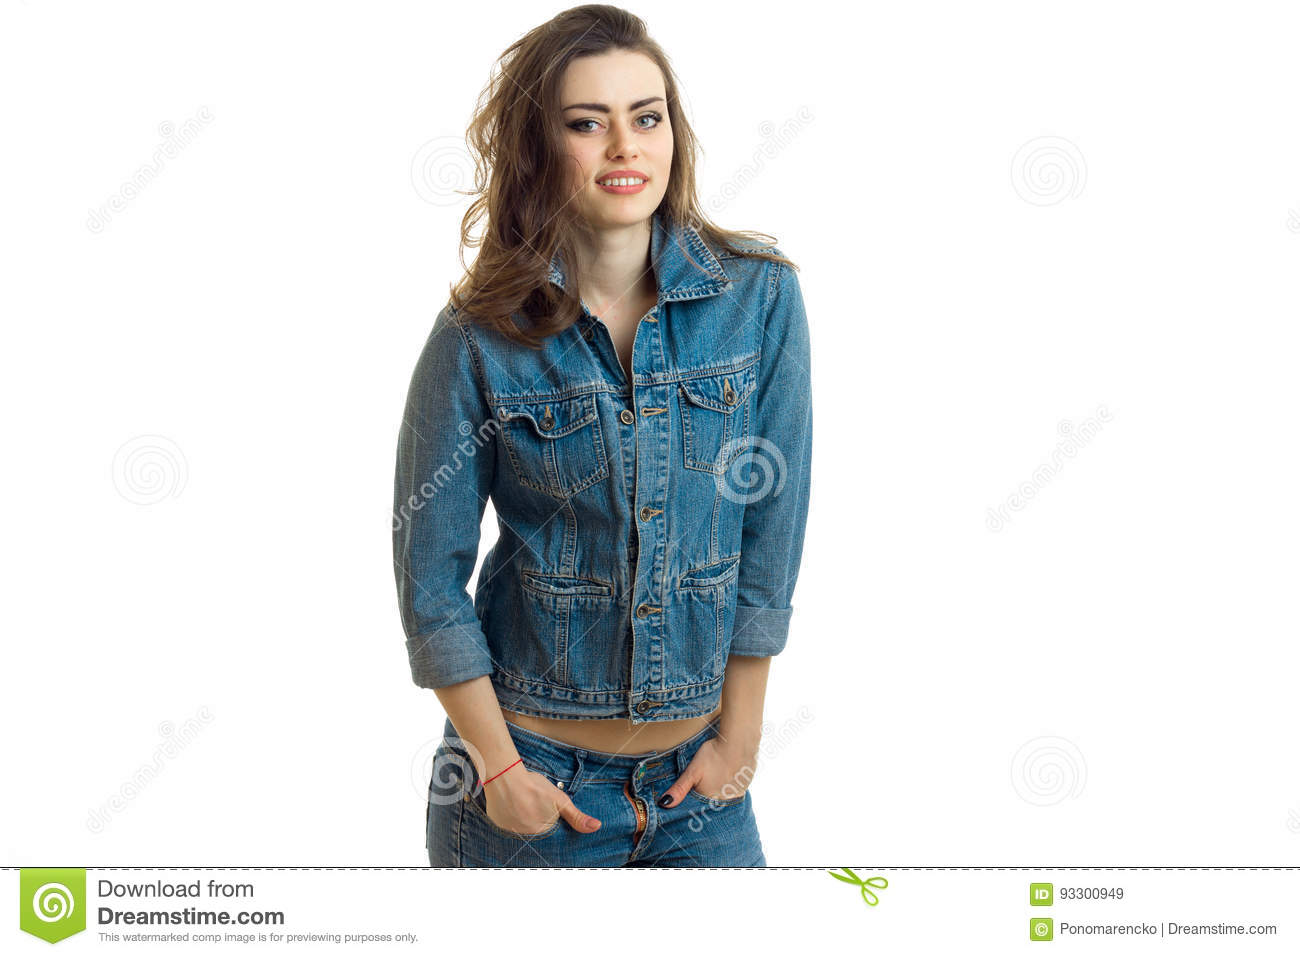 Joyful young girl stands in jeans jacket is smiling looks straight and keeps hands in his pockets